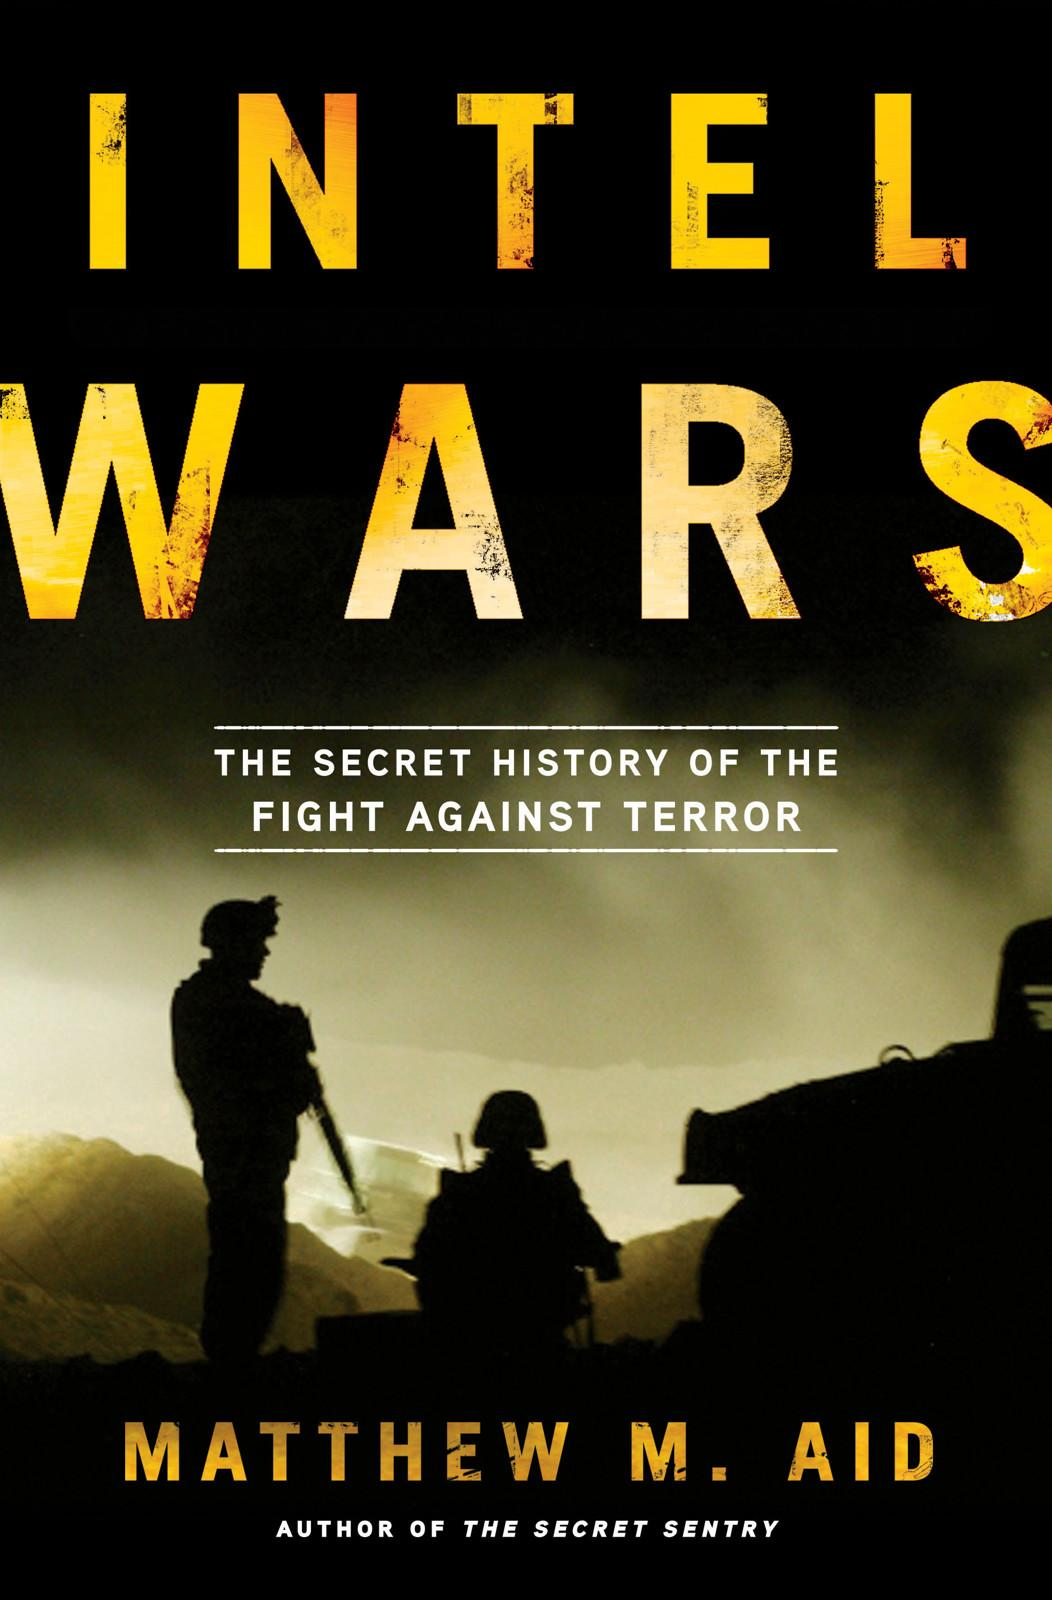 Intel Wars: The Secret History of the Fight Against Terror free download